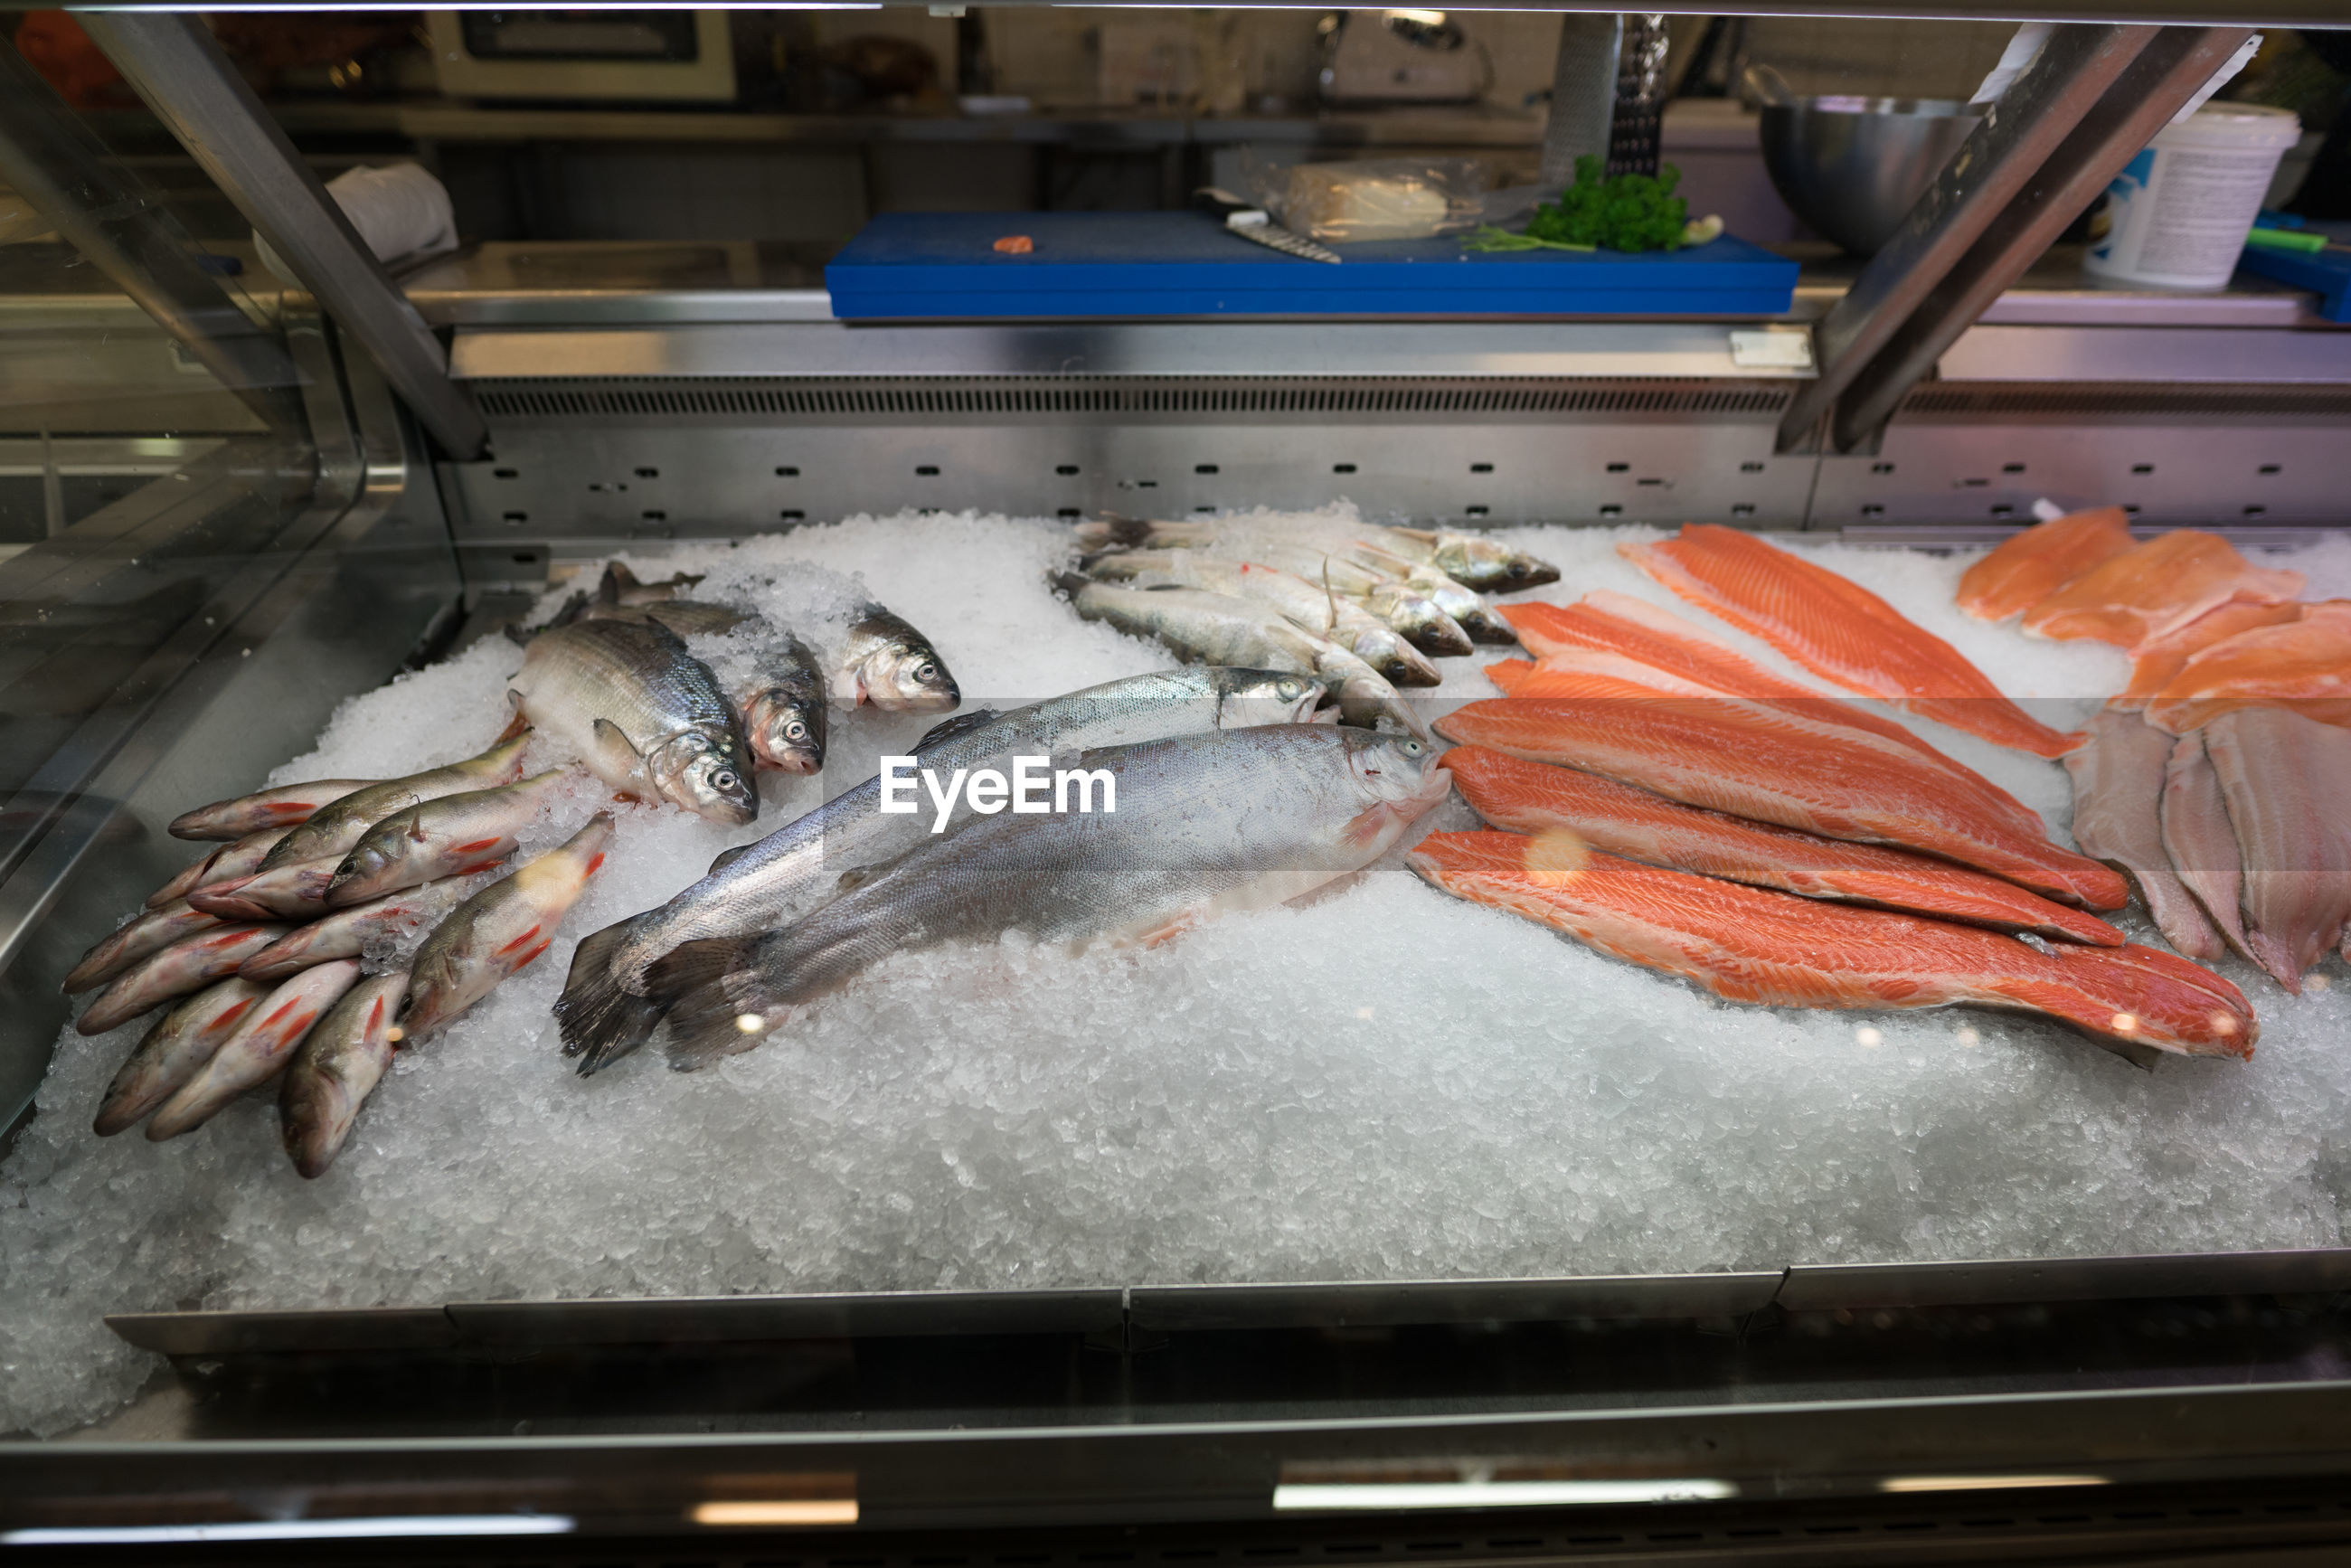 High angle view of dead fish on ice